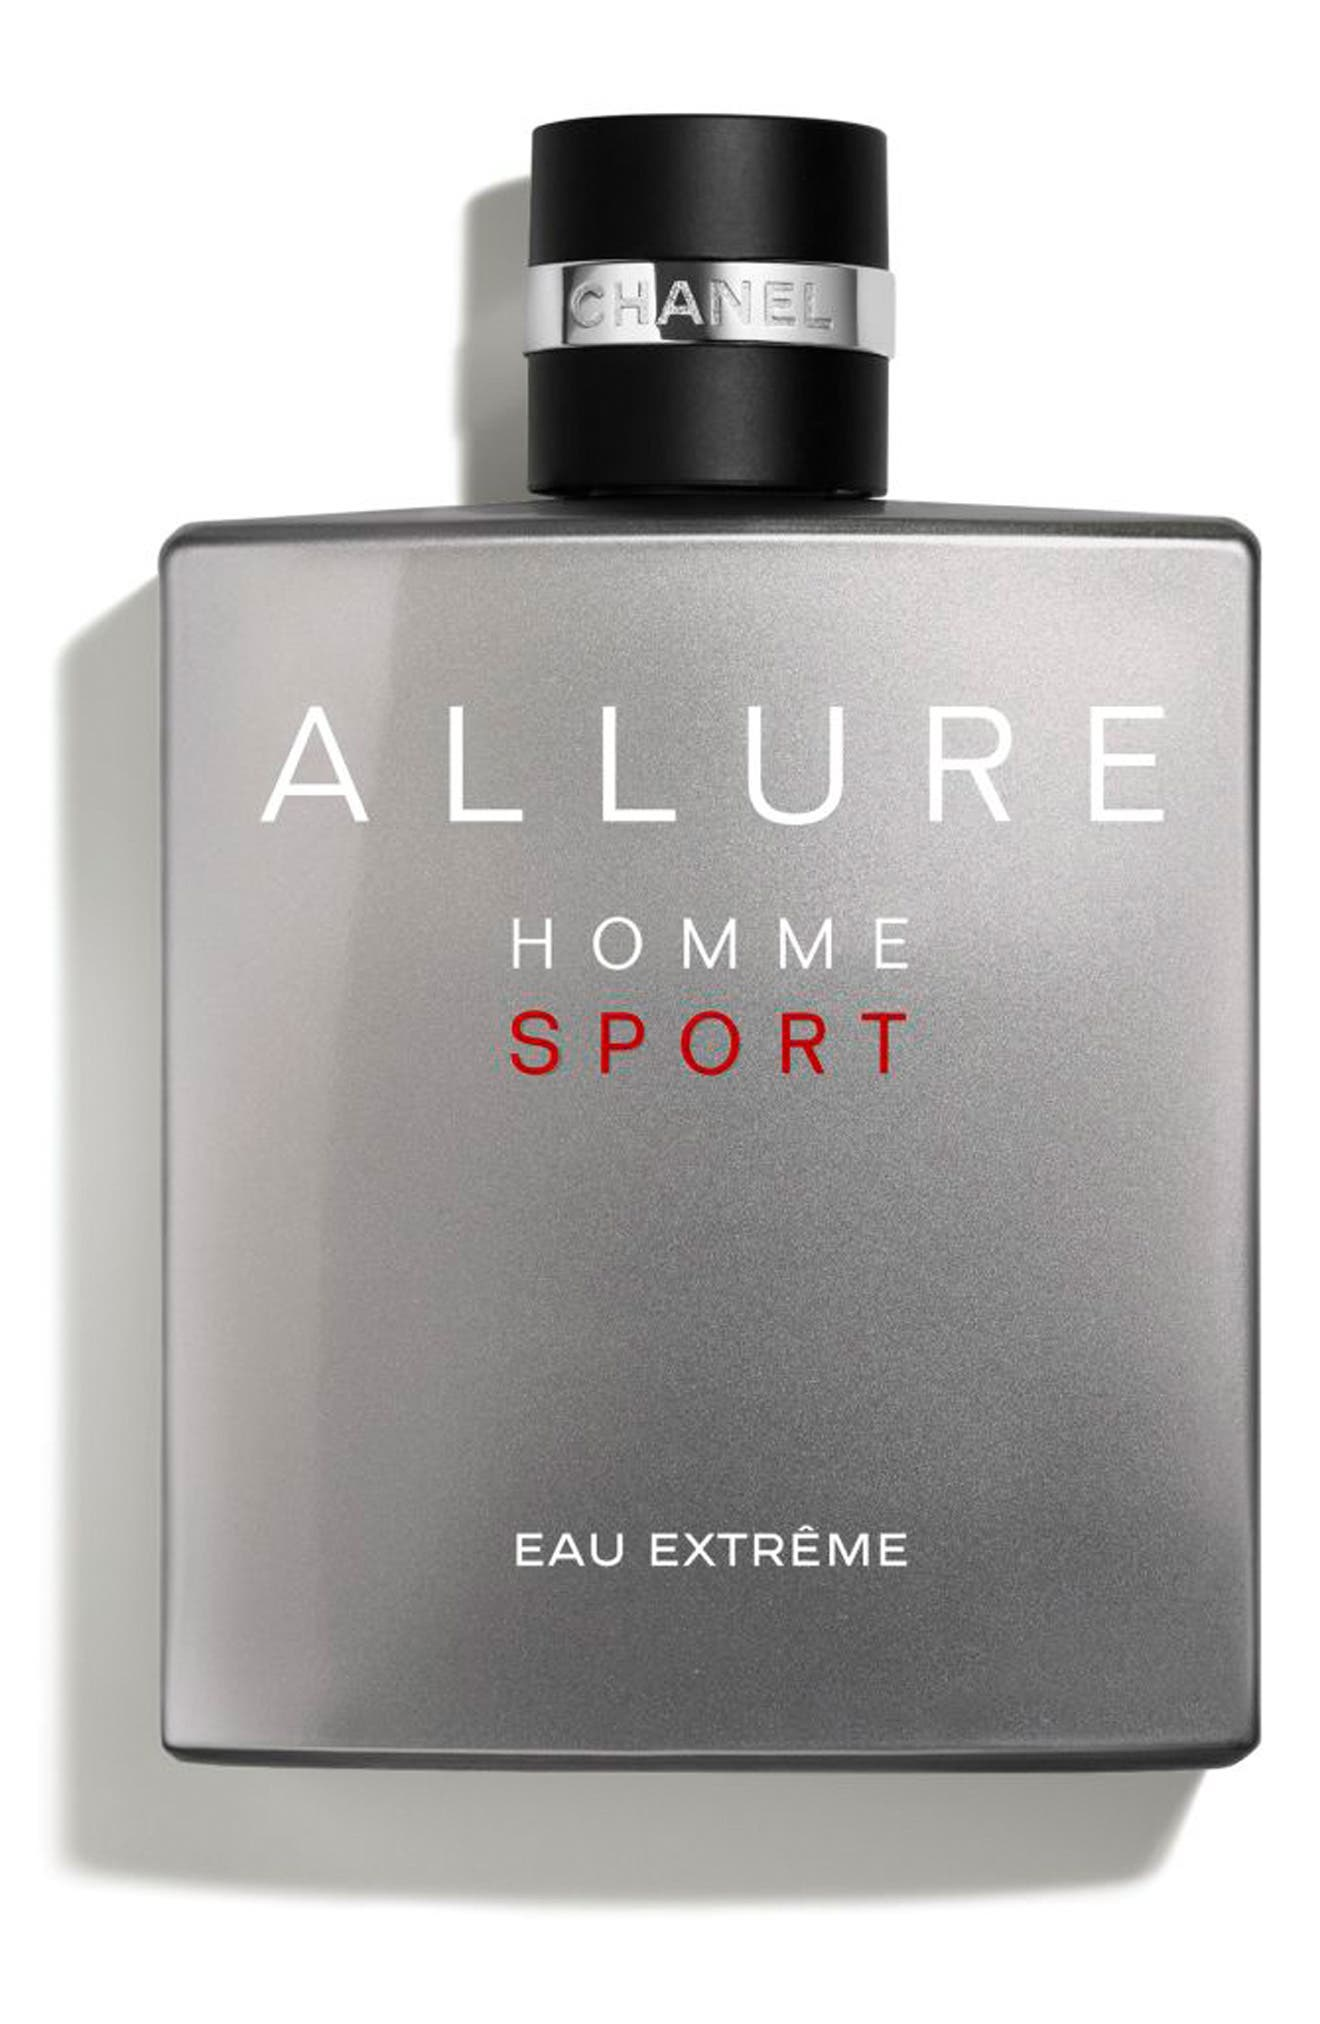 CHANEL, ALLURE HOMME SPORT EAU EXTREME Eau de Parfum, Alternate thumbnail 2, color, NOL COLOR